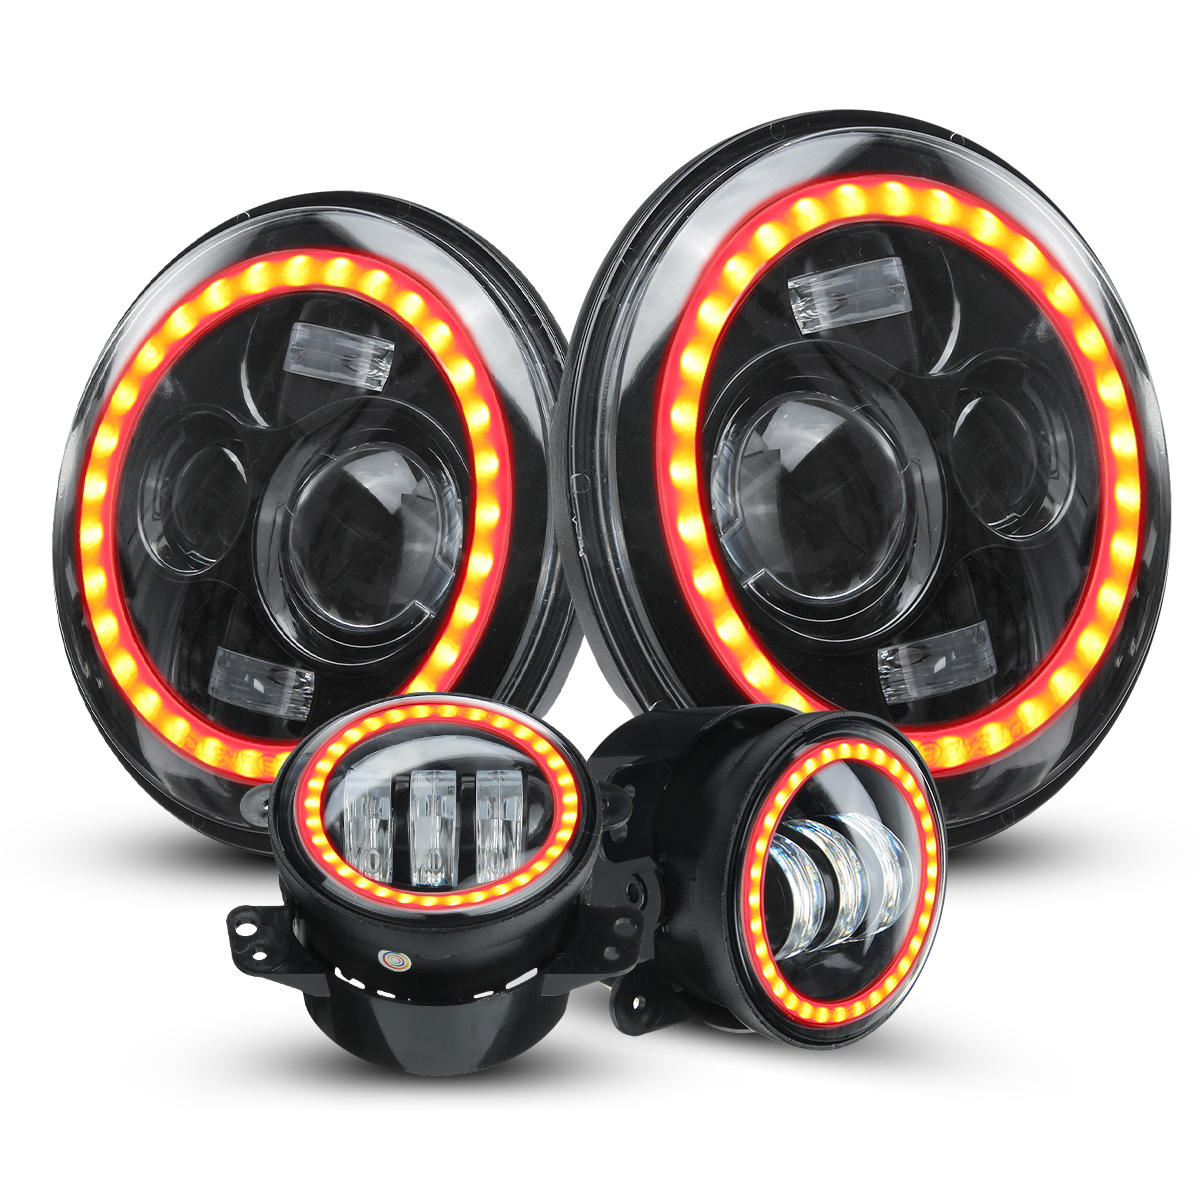 7 Inch Car Halo RGB LED Headlights Angel Eyes Lights bluetooth Support APP Control Waterproof High Low Beam Fog Lamps 4Pcs For Jeep Wrangler JK 2007-2017